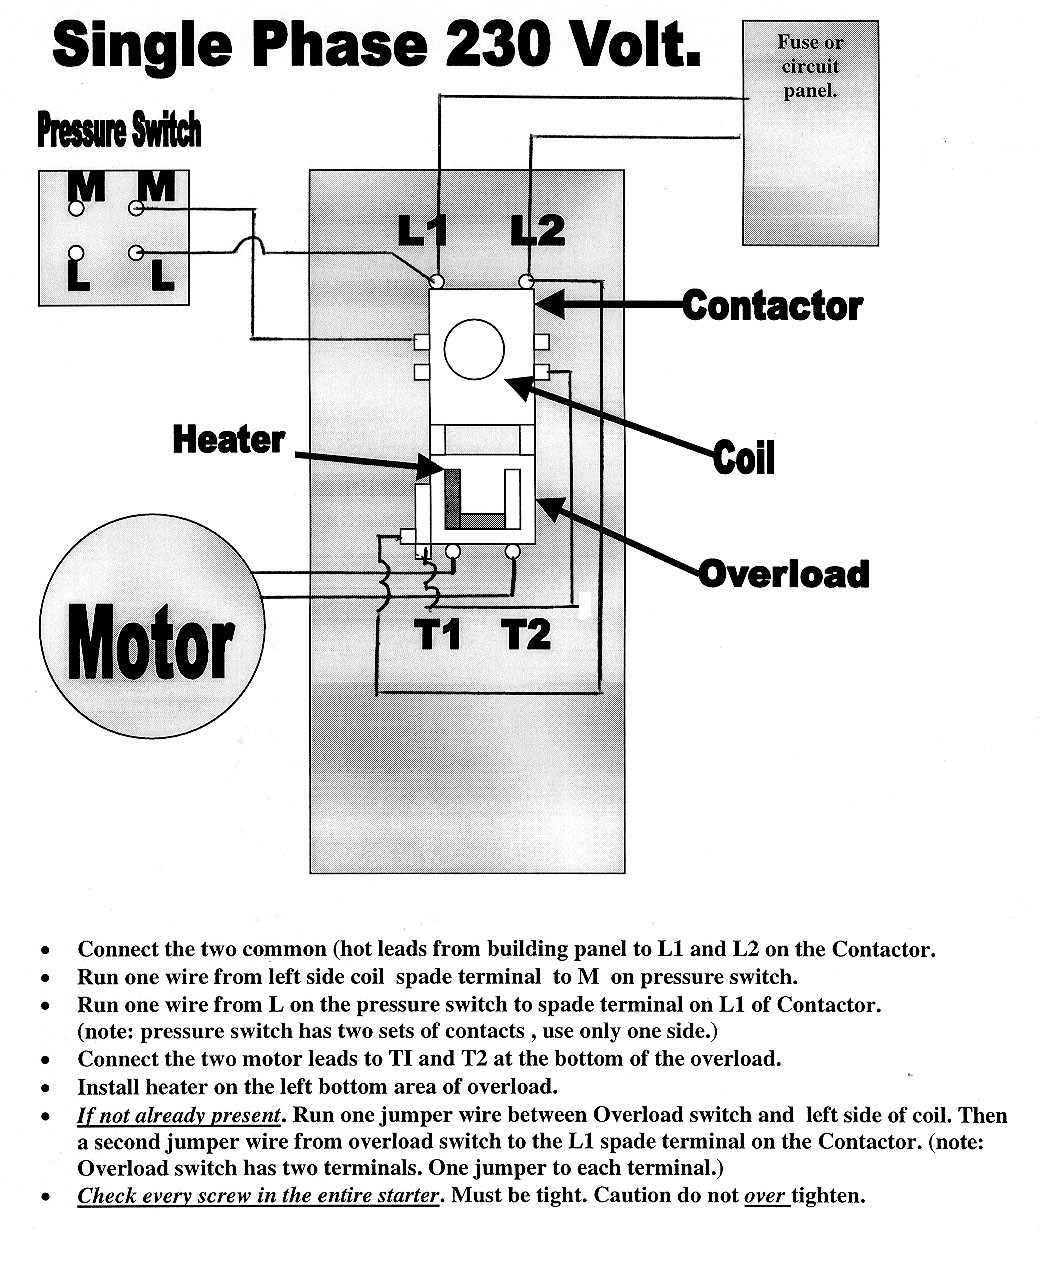 1 Phase Motor Starter Wiring Diagram - Weg Motor Capacitor Wiring Diagrams Schematics and Baldor Diagram In Cutler Hammer Starter Wiring Diagram 9d